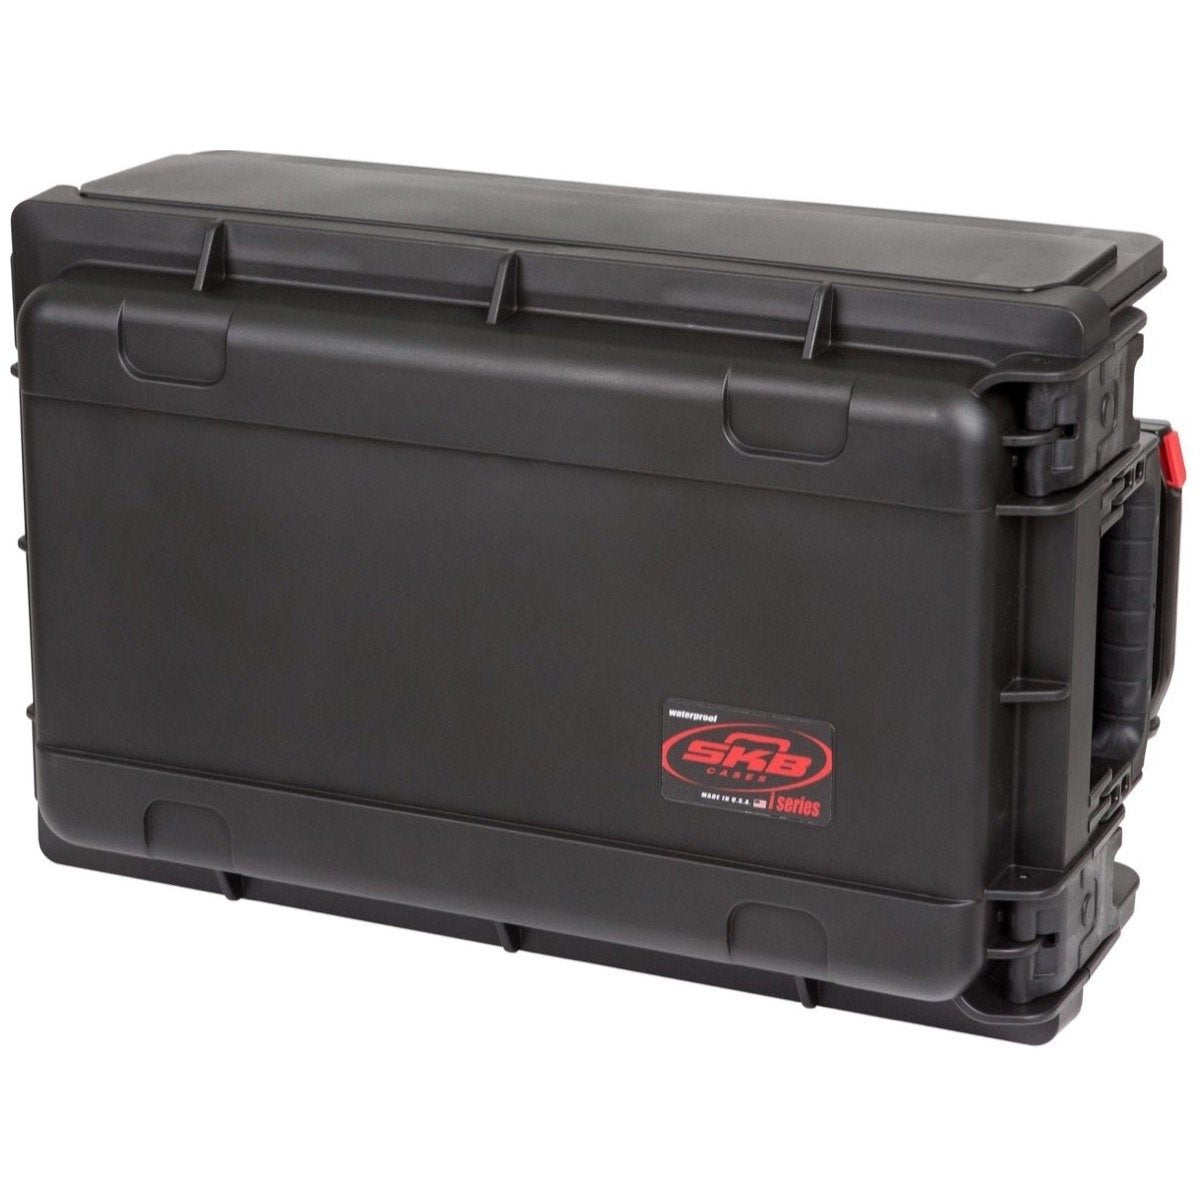 SKB 1SKB-iSF2U Injection Molded Studio Flyer Rack Case